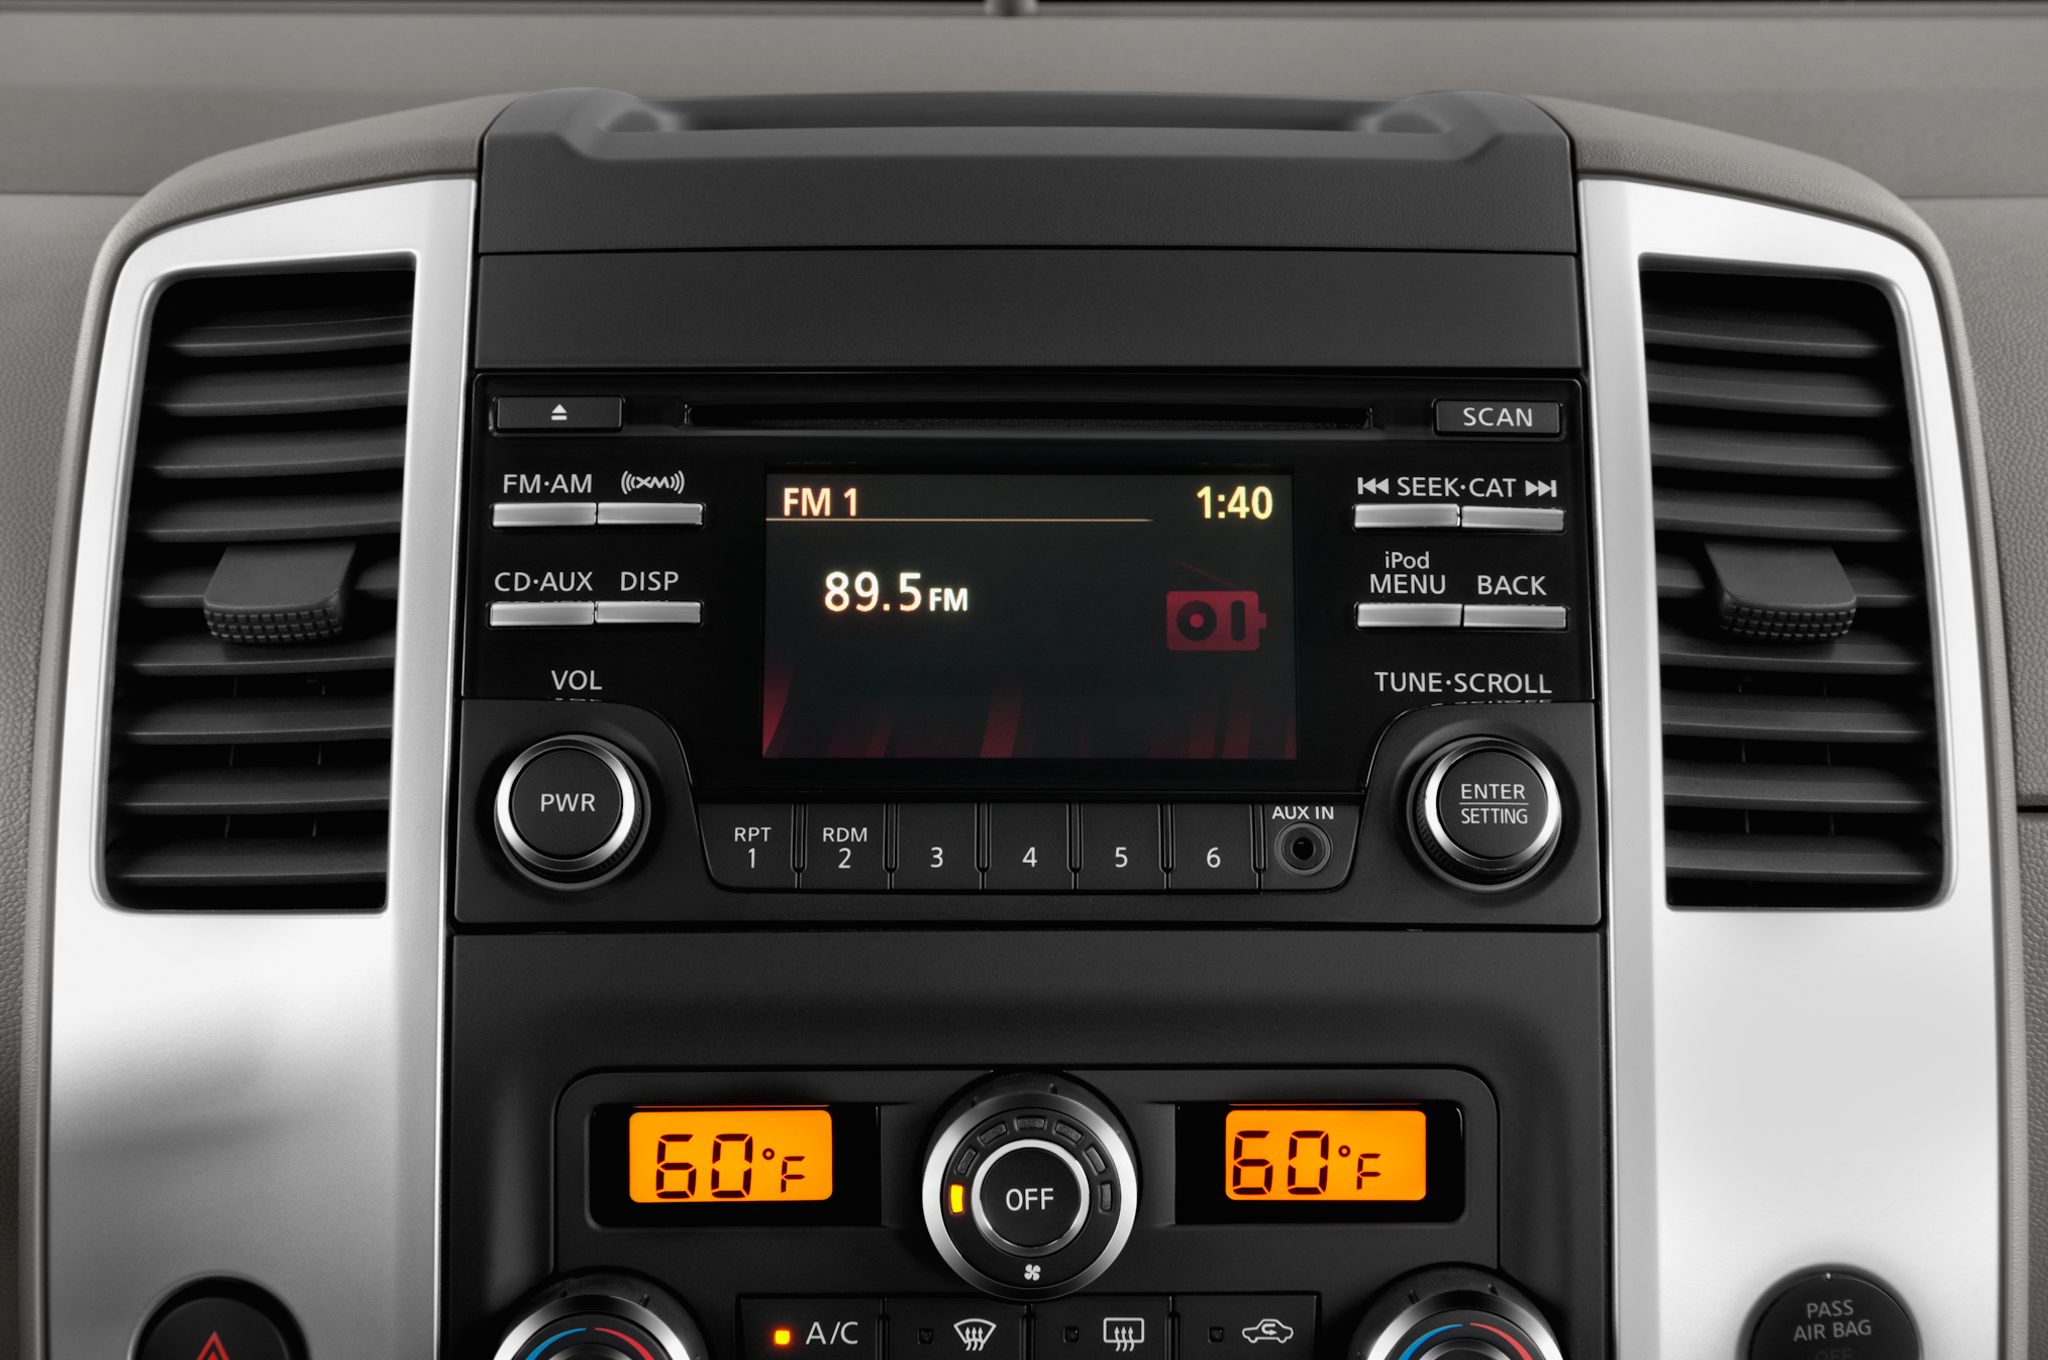 2014 Nissan Frontier Sv Radio Wiring Diagram Trusted Diagrams 2009 Cube Audio System Get Free Image About Harness